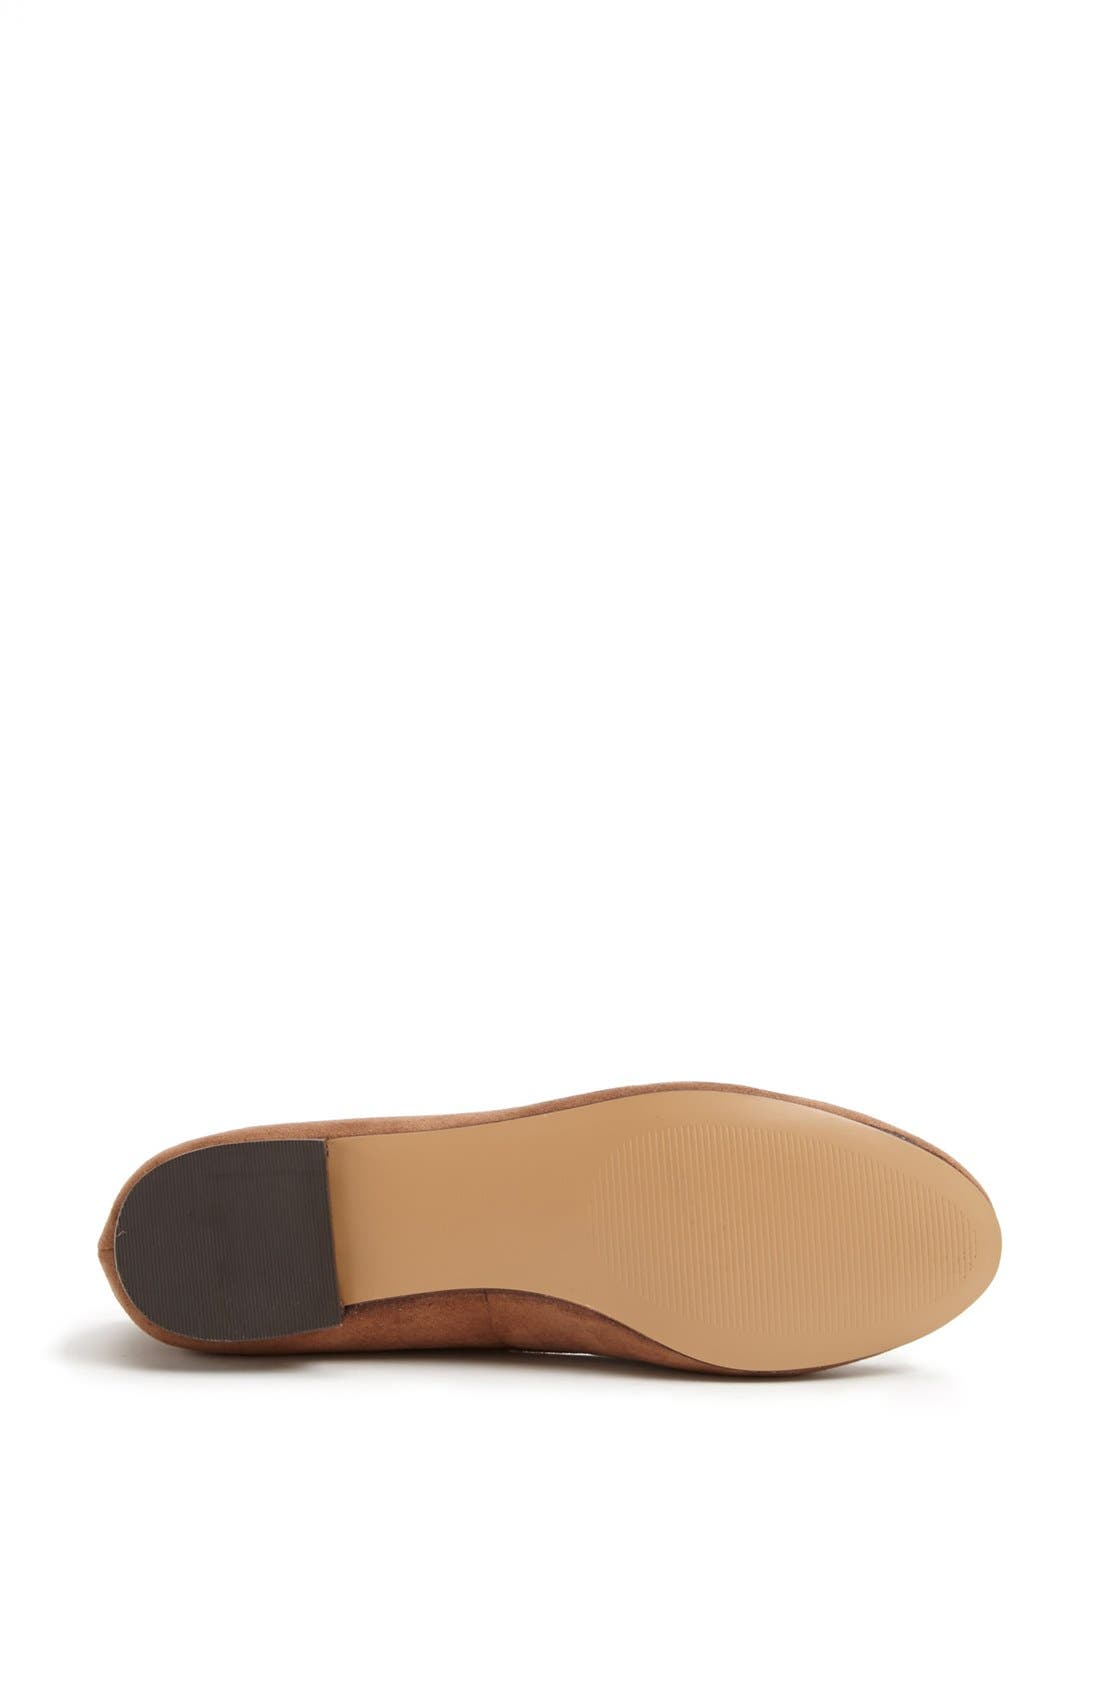 Alternate Image 4  - Julianne Hough for Sole Society 'Cambria' Smoking Slipper Flat